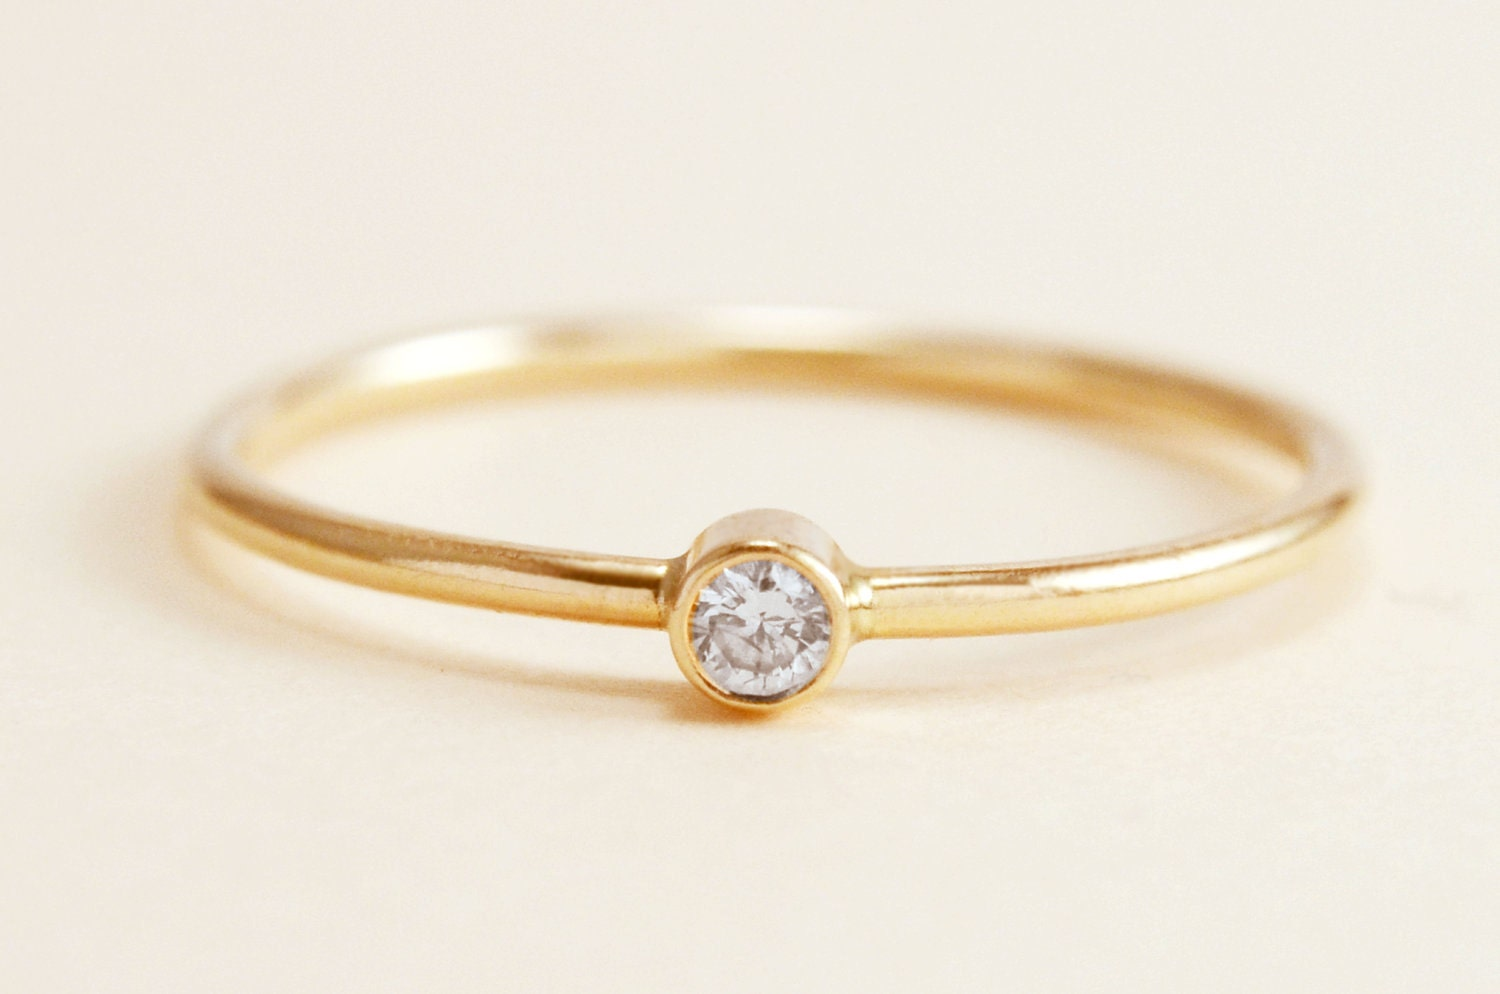 simple ring in 14k gold by peachesandcherries on etsy